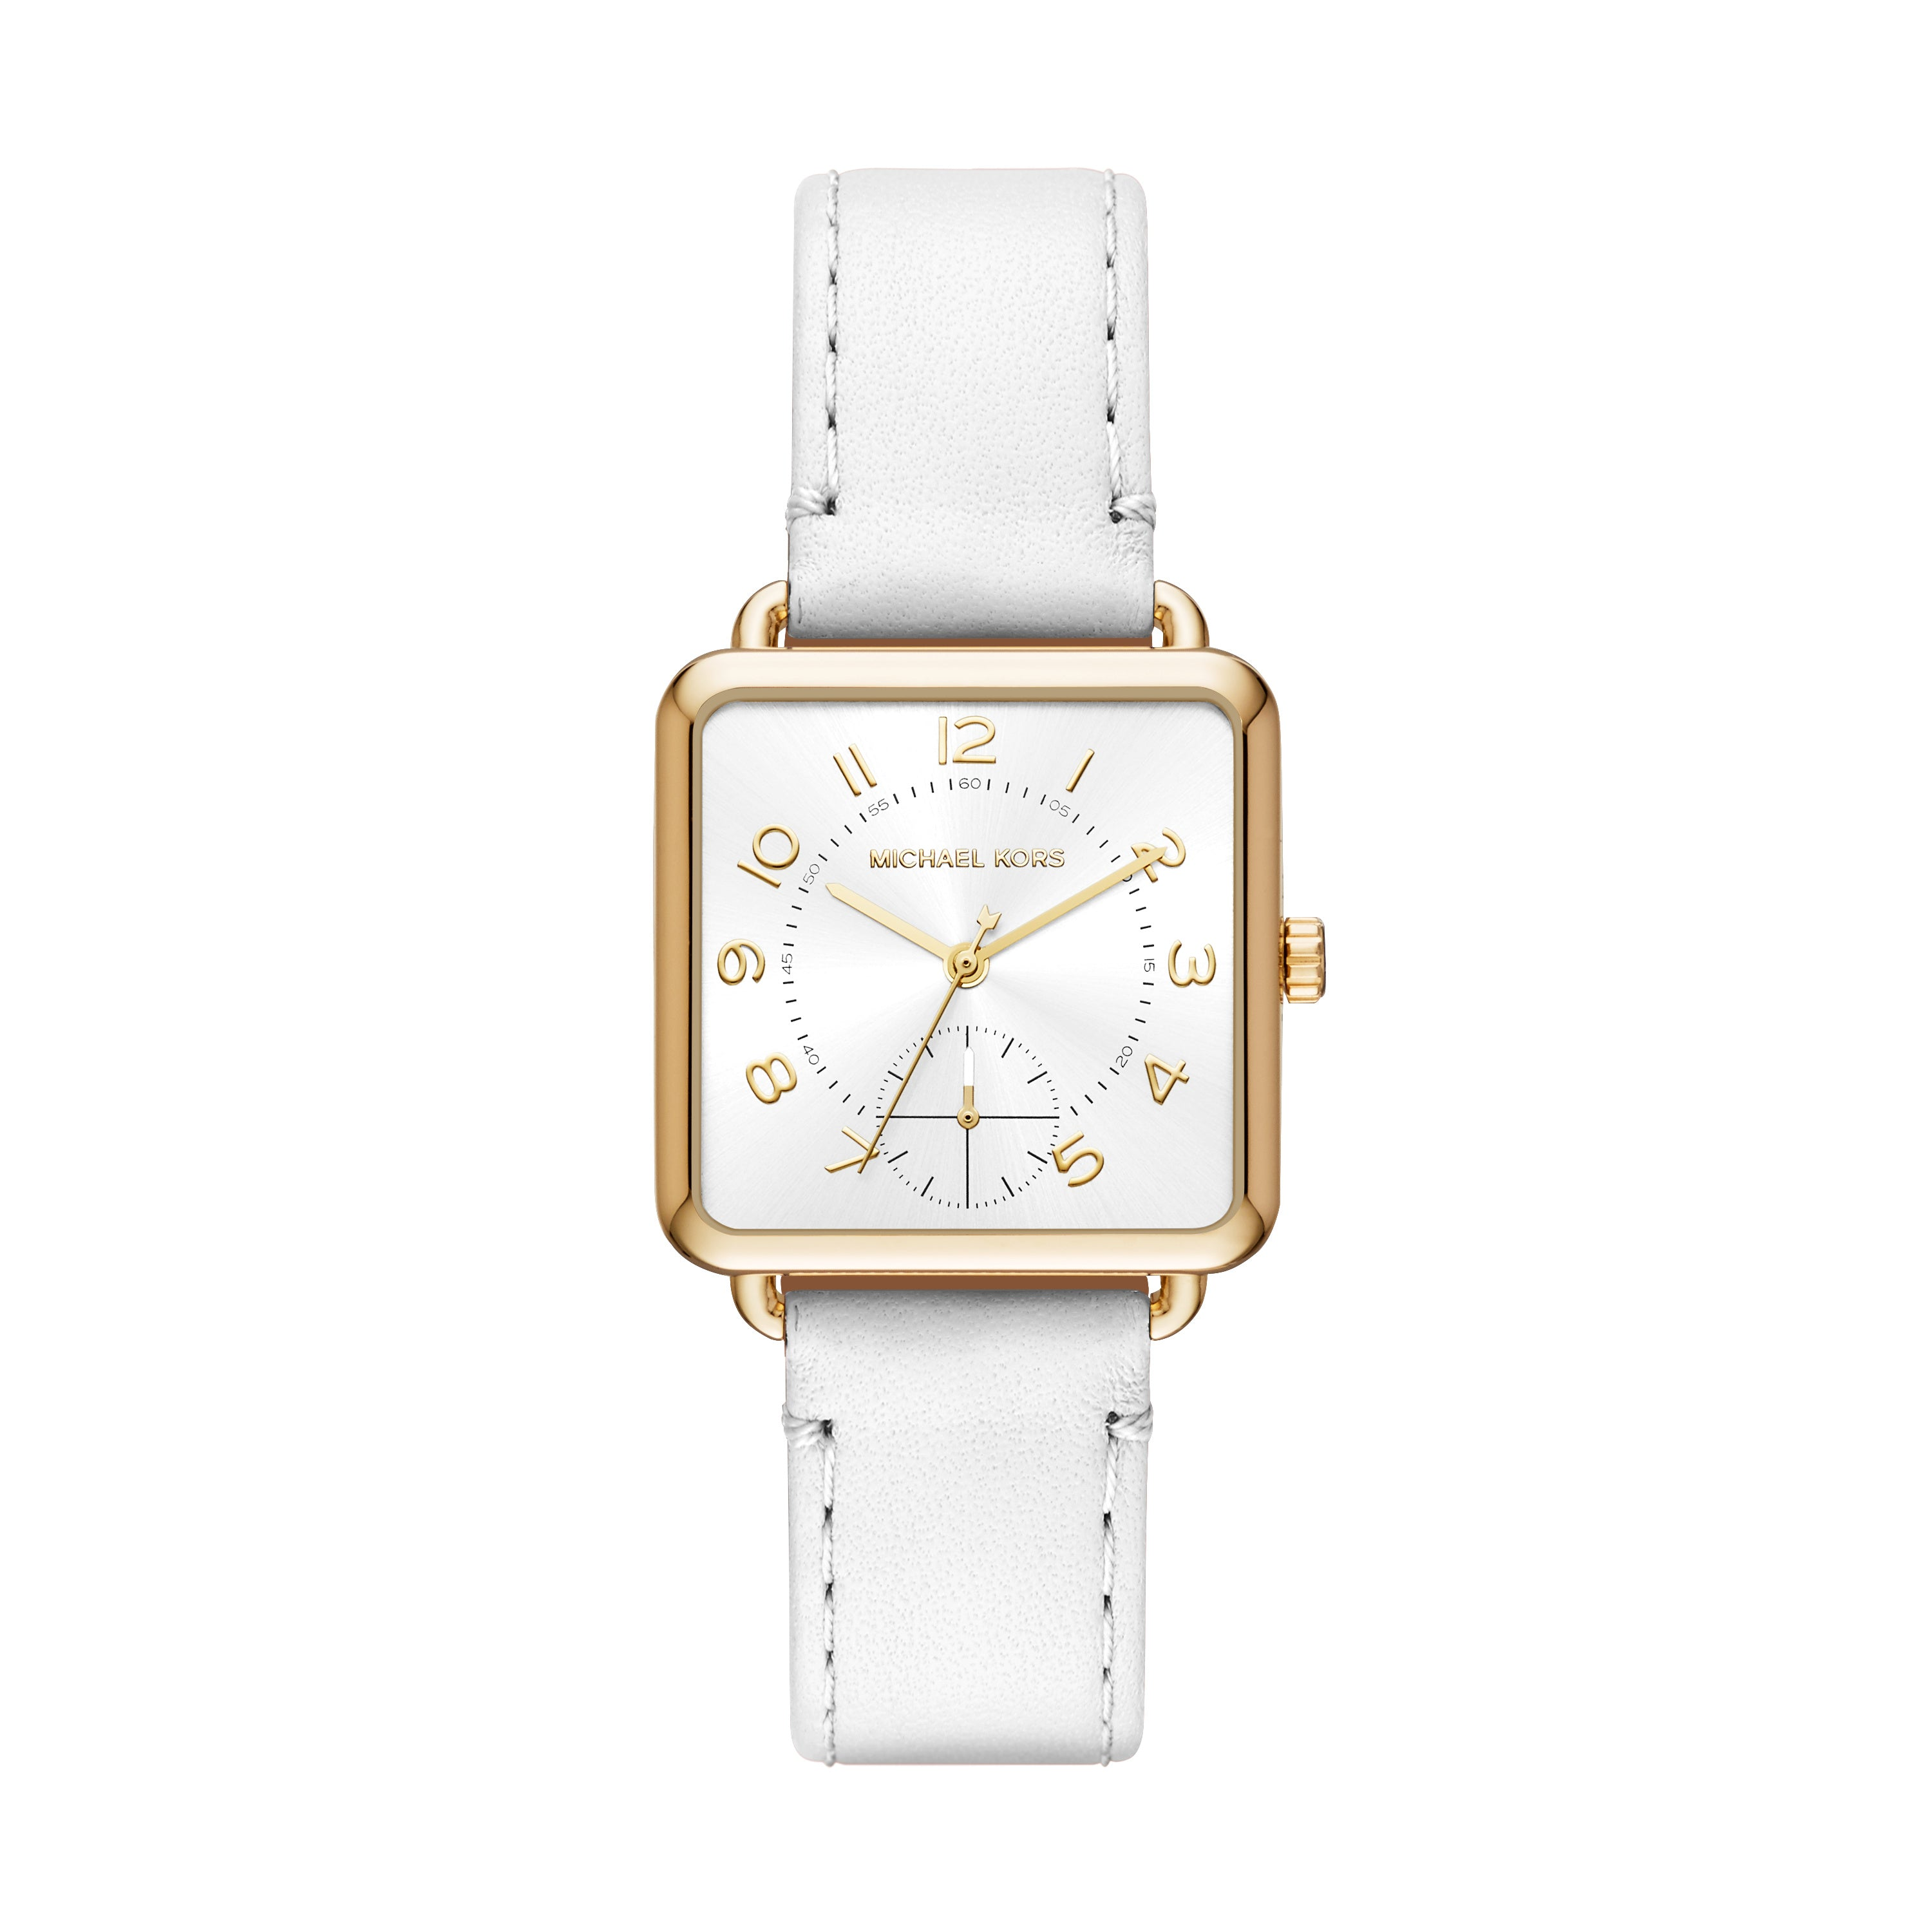 Brenner White Leather Strap Watch